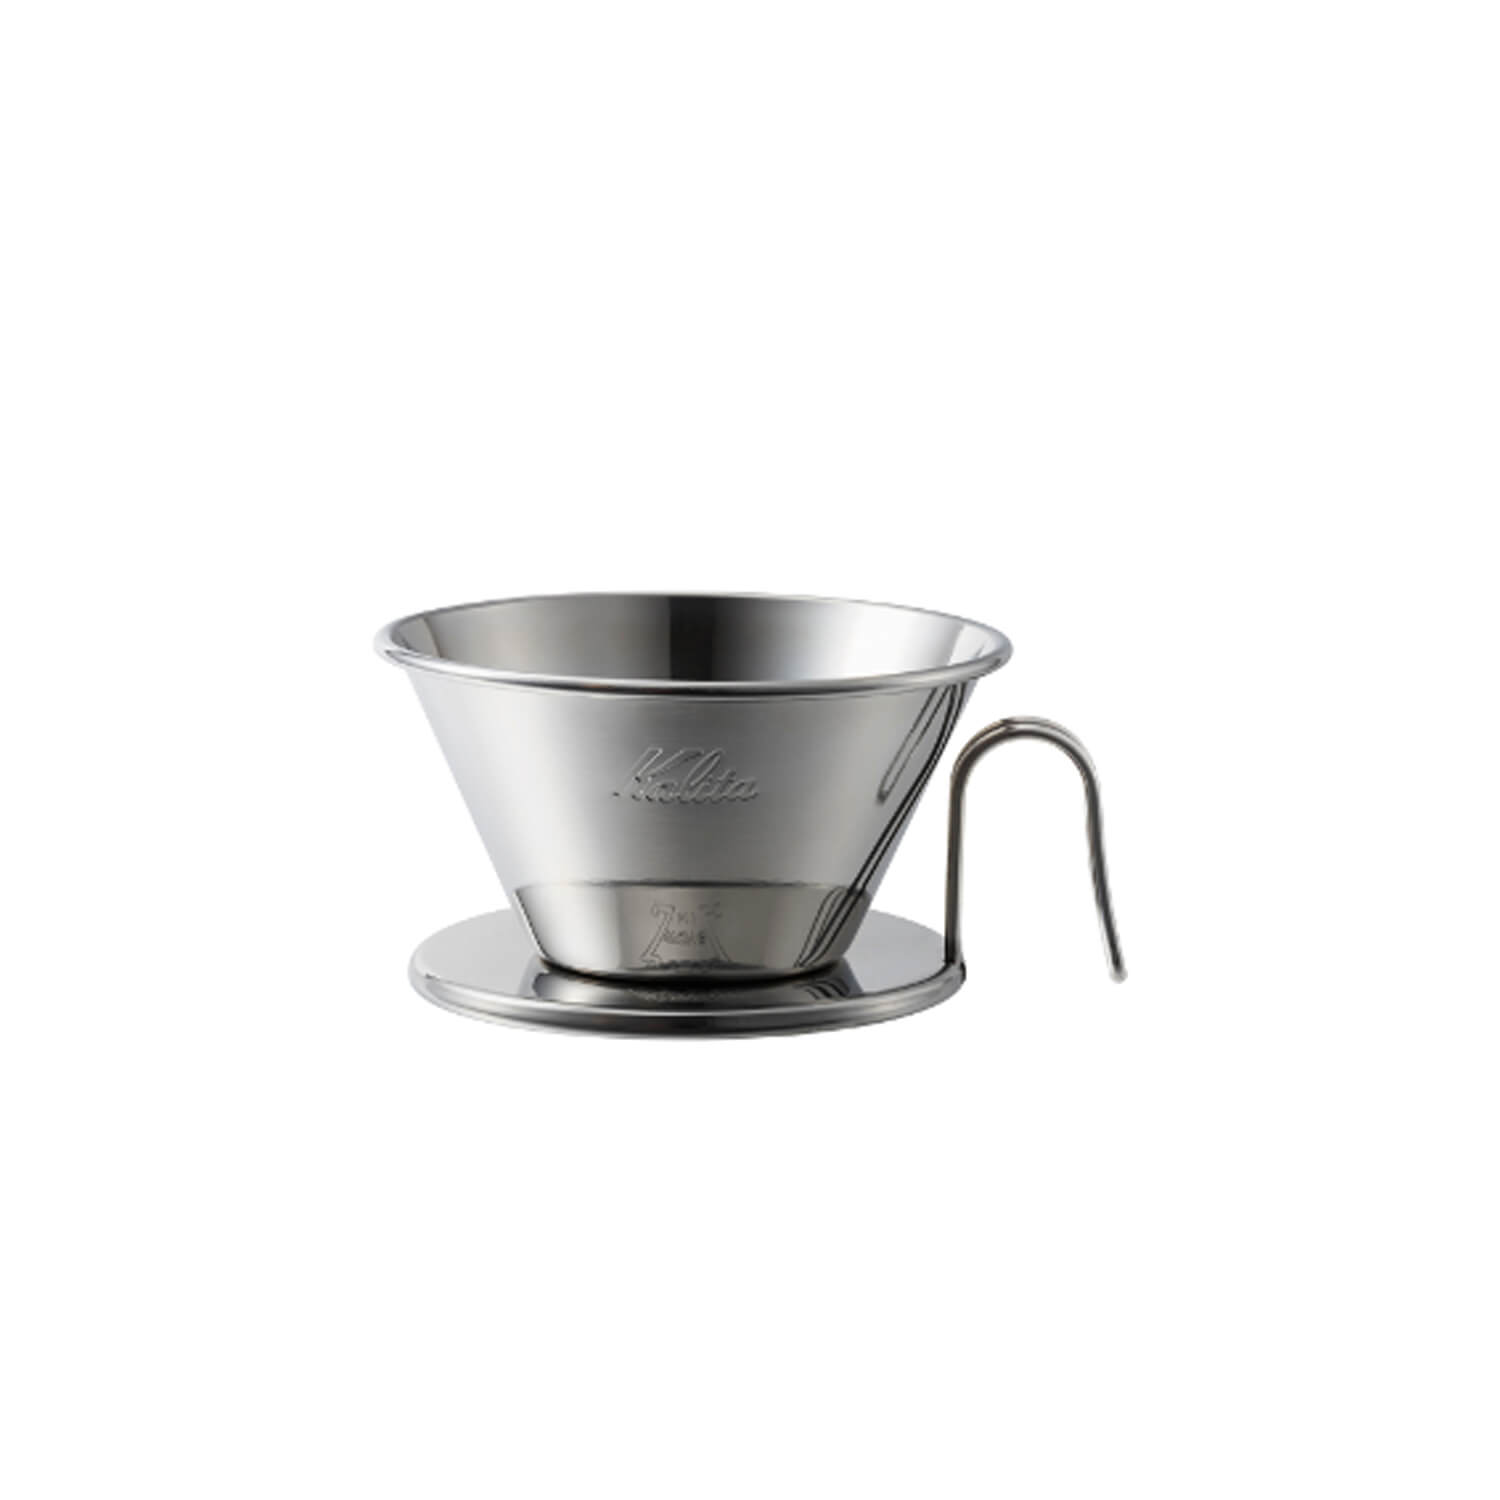 Kalita - Wave Dripper 155 - Stainless